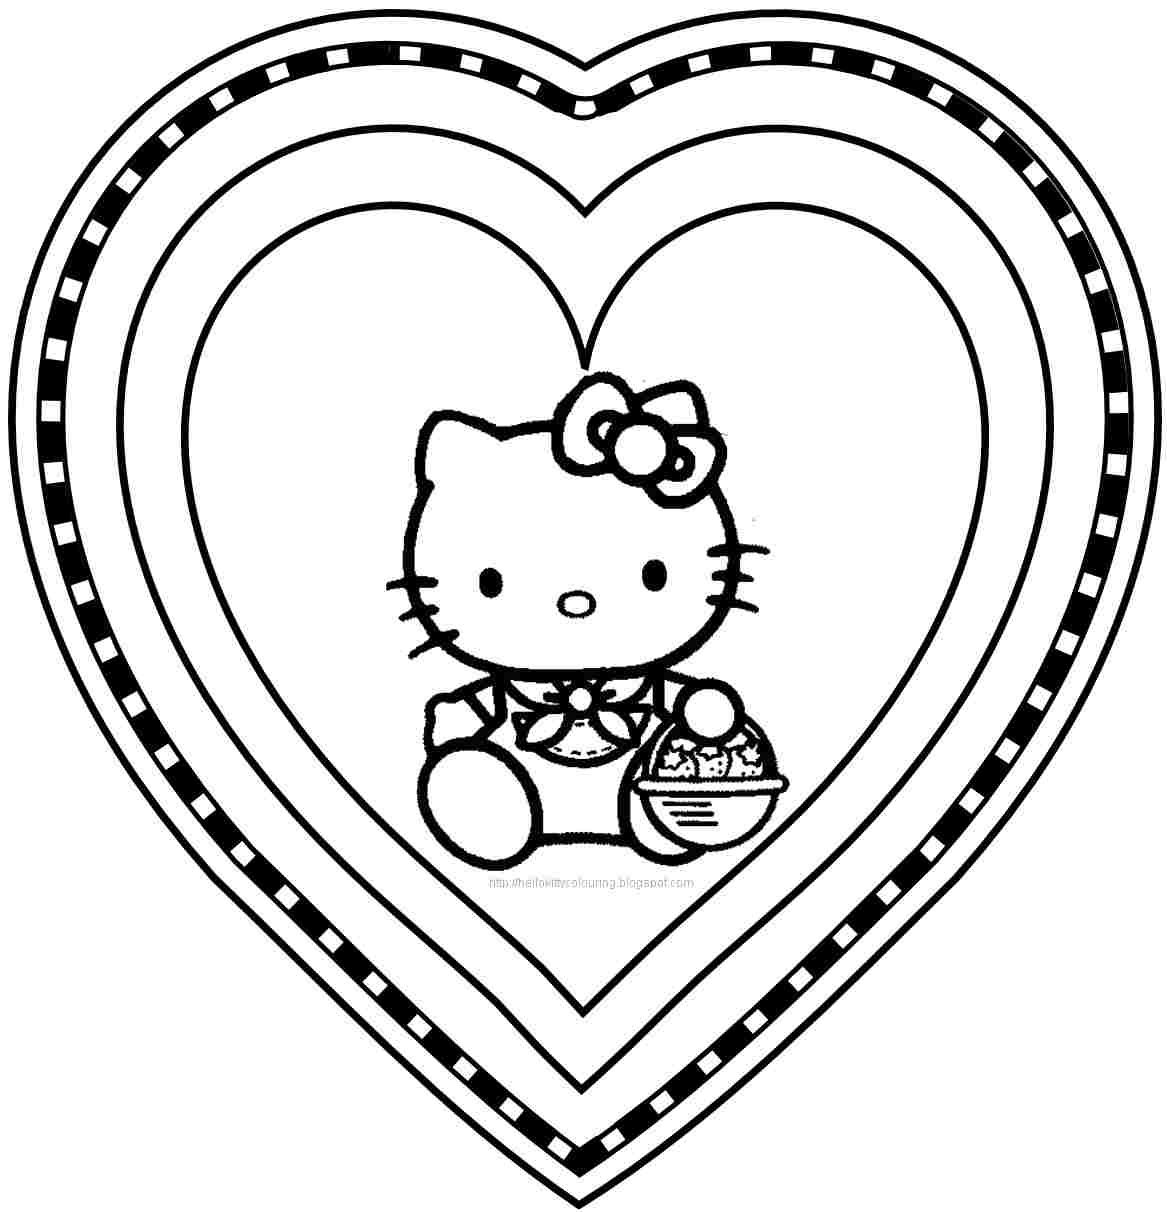 Free printable hello kitty valentine colouring pages for kids